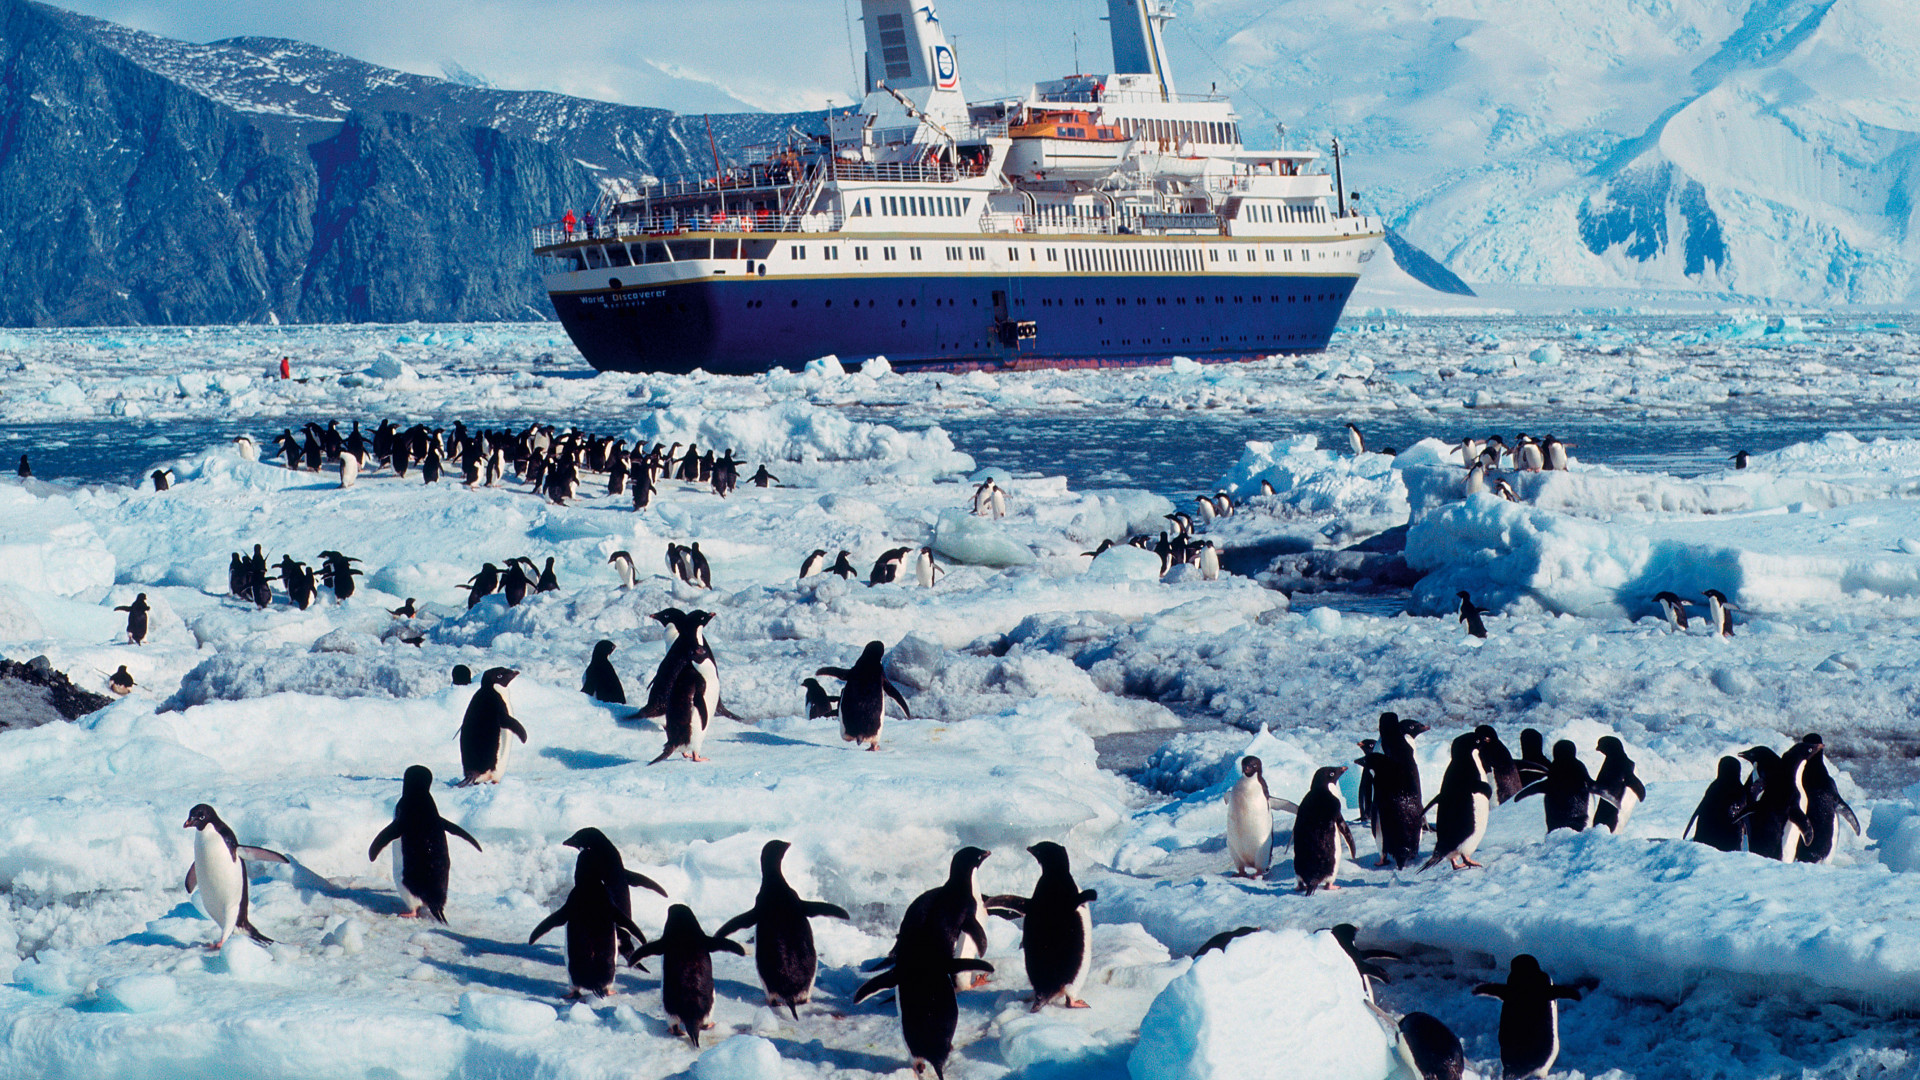 Penguins and an ice-breaker on an Antarctic cruise